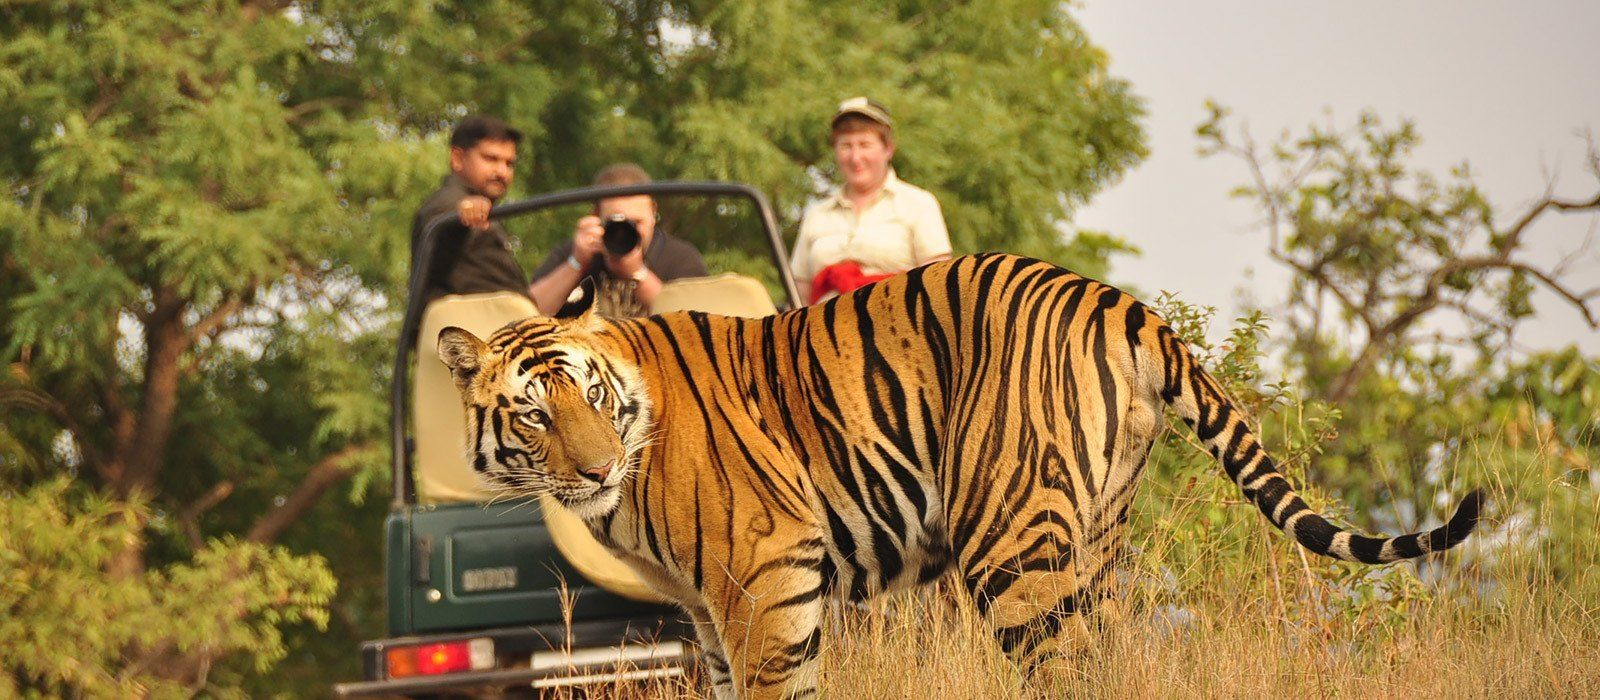 Destination Bandhavgarh North India